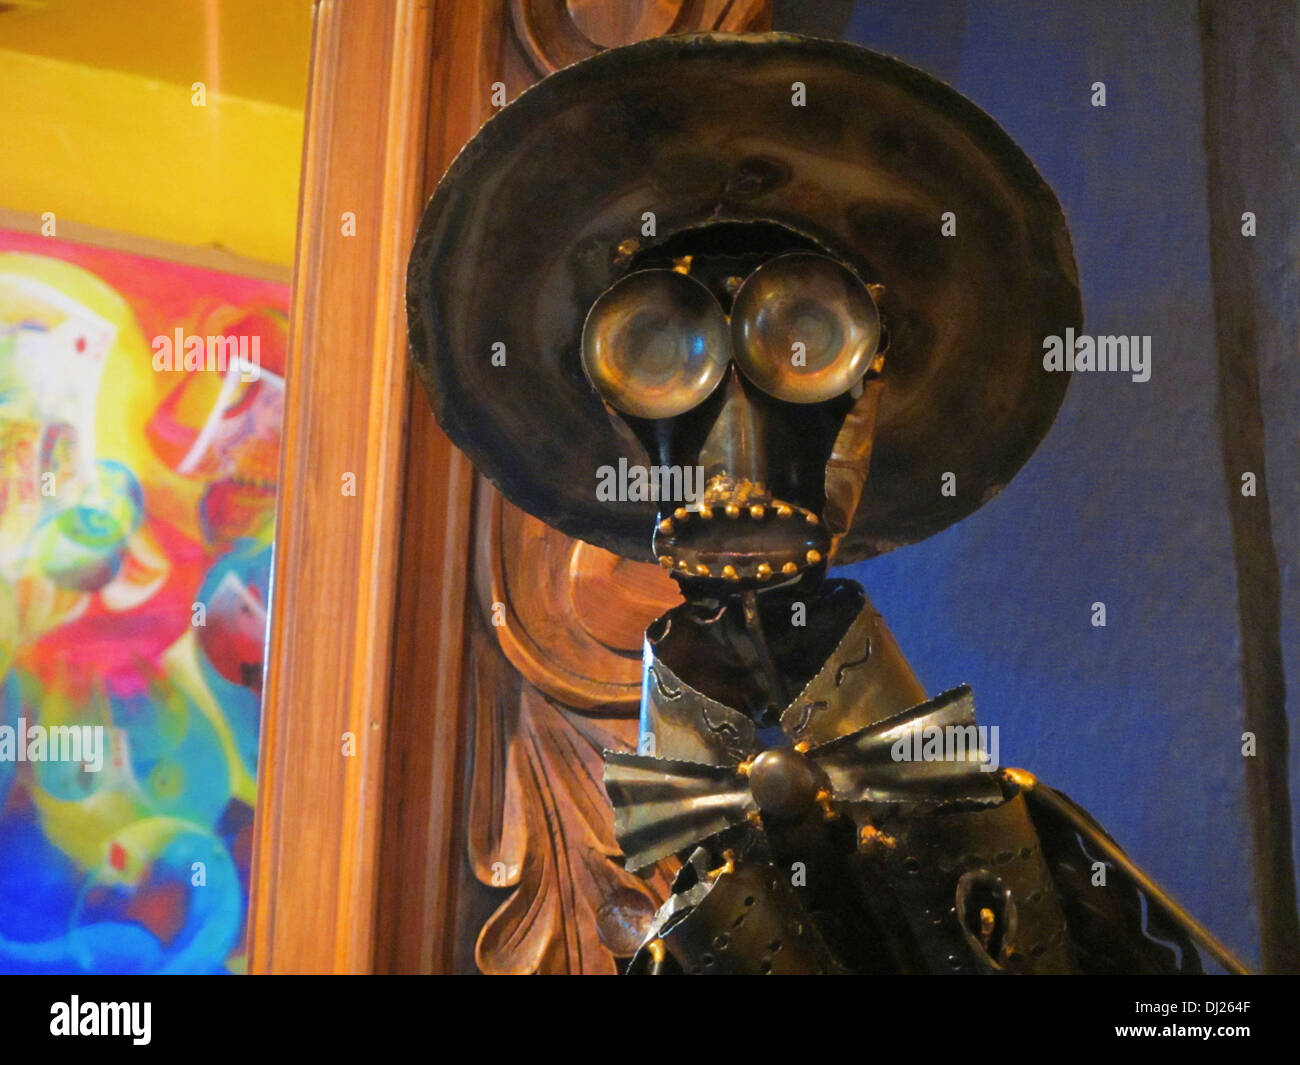 A sculpture made for the Day of the Dead or Día de Muertos holiday in Mexico. Stock Photo